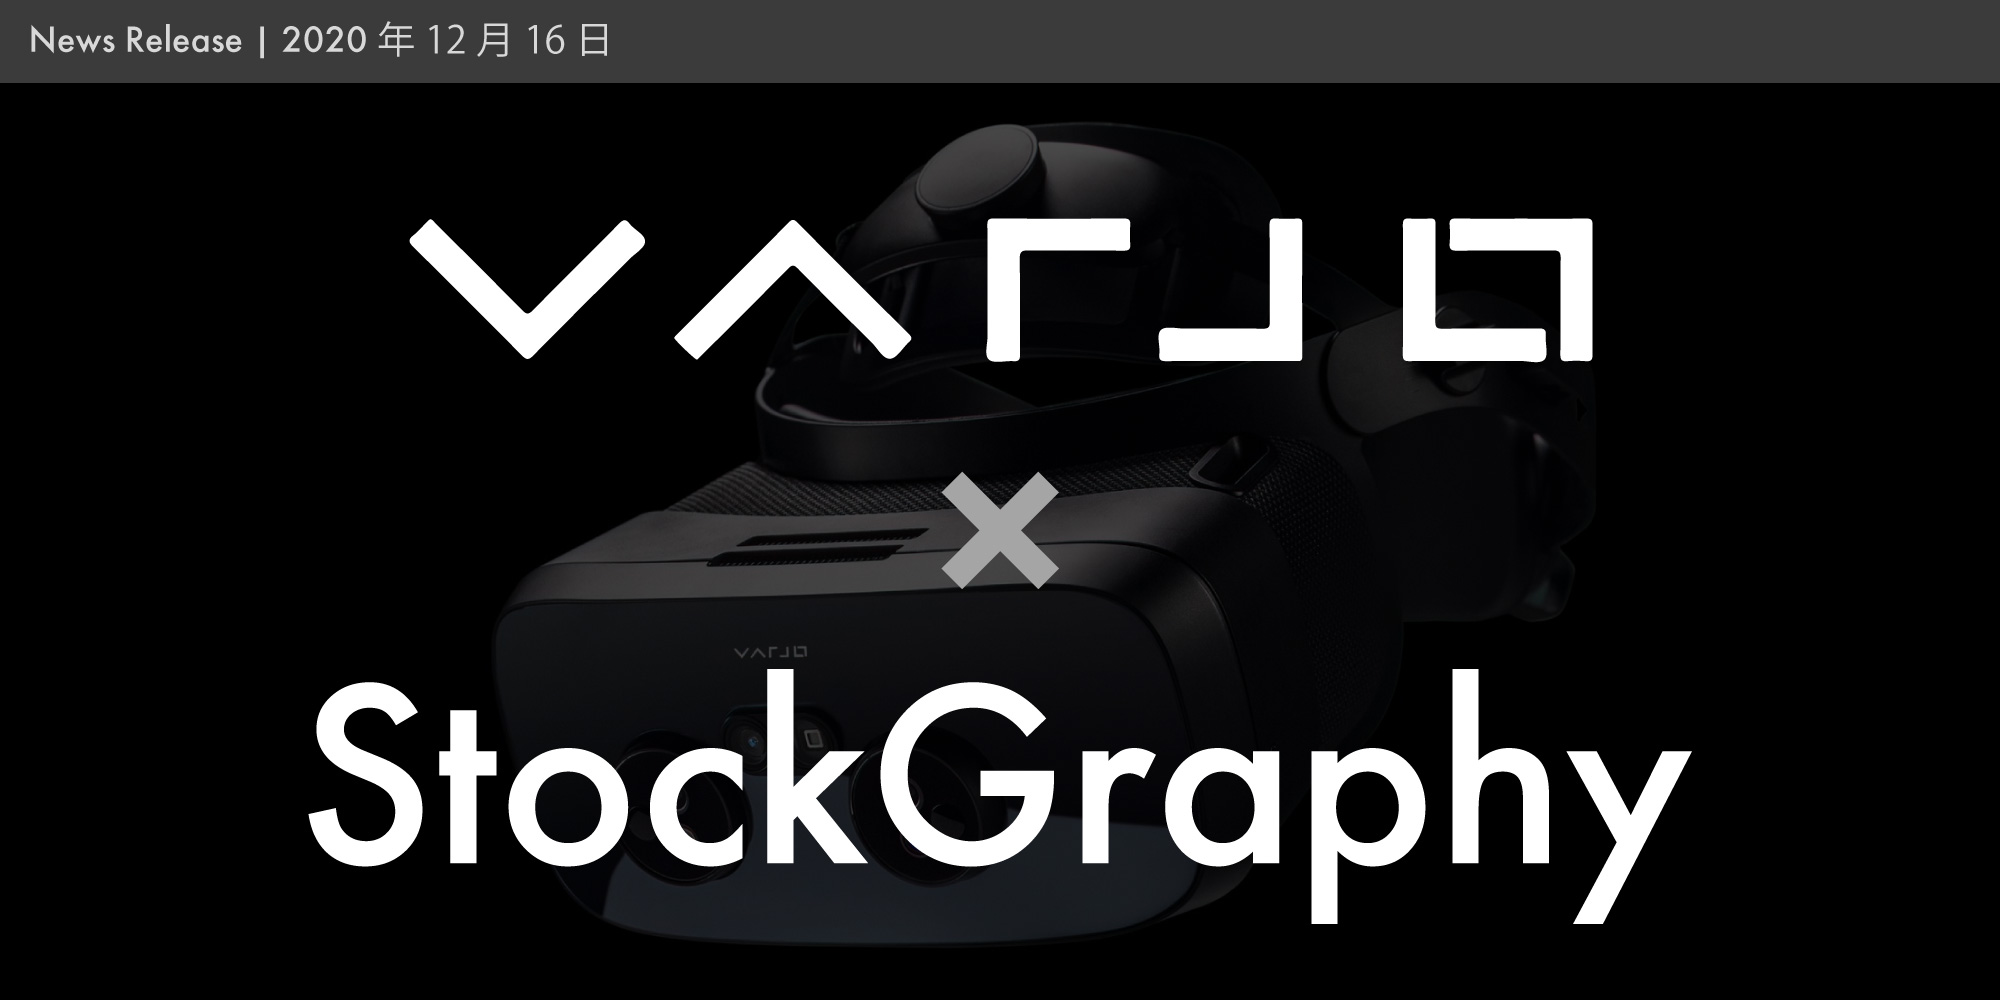 Partnership between Varjo and StockGraphy